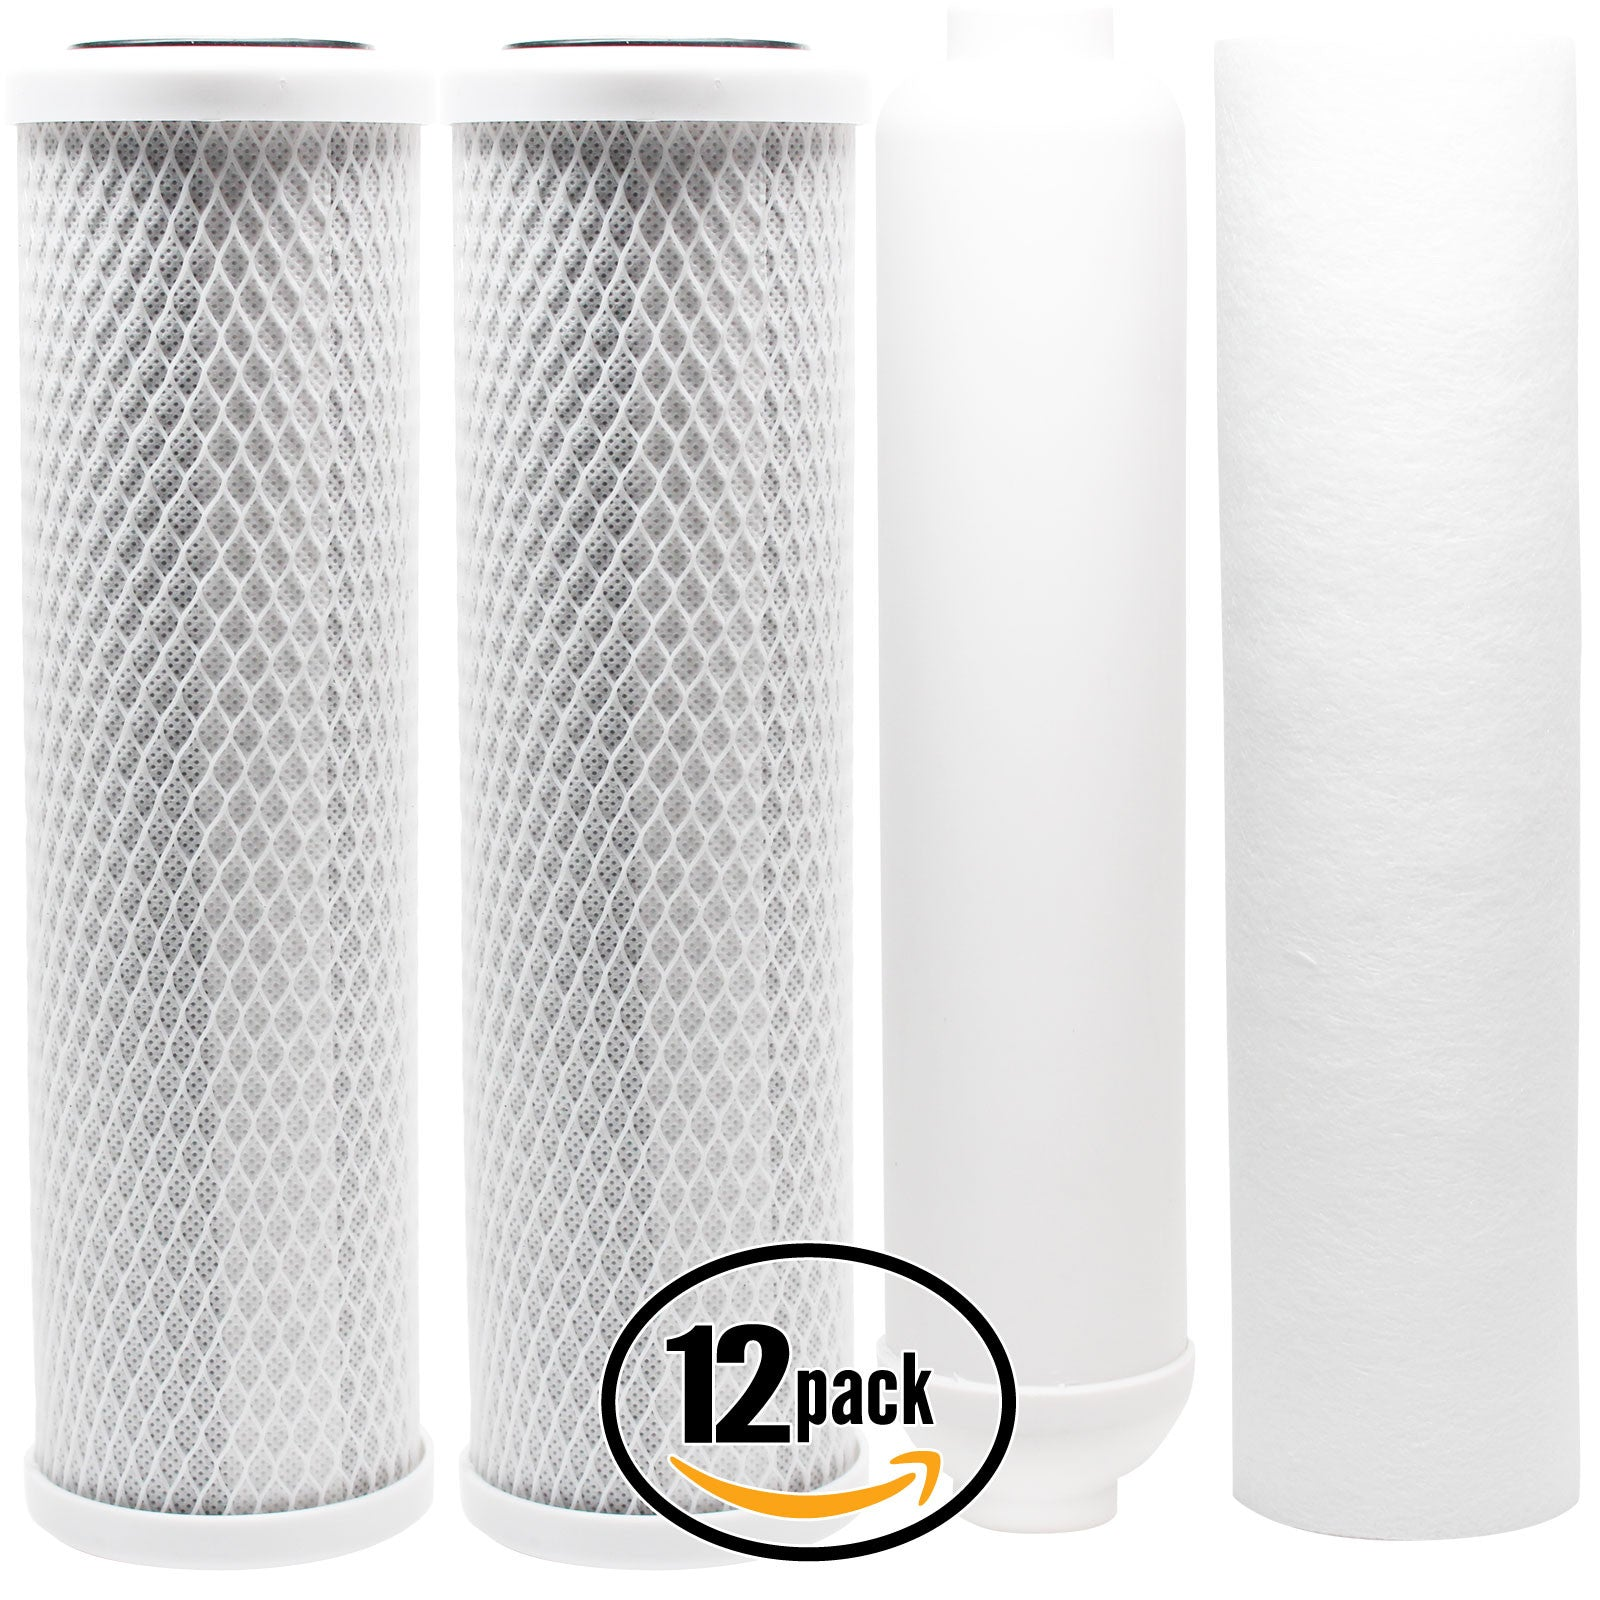 12-Pack Replacement Filter Kit for AMI AAA-245PU RO System - Includes Carbon Block Filters, PP Sediment Filter & Inline Filter Cartridge